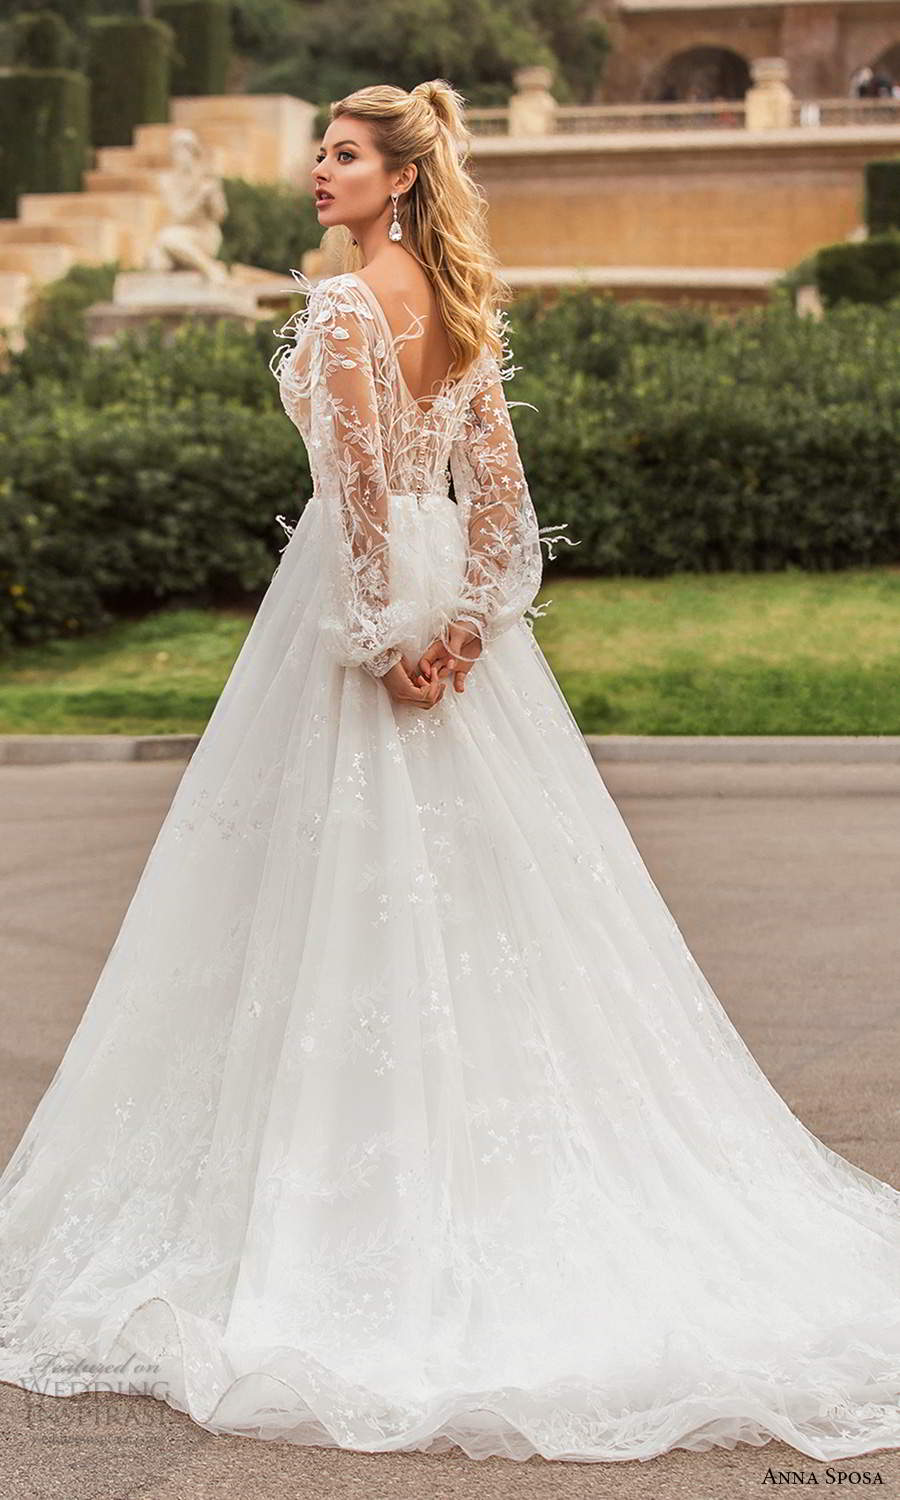 anna sposa 2021 bridal illusion bishop sleeves plunging v neckline fully embellished feather lace a line ball gown wedding dress chapel train (11) bv